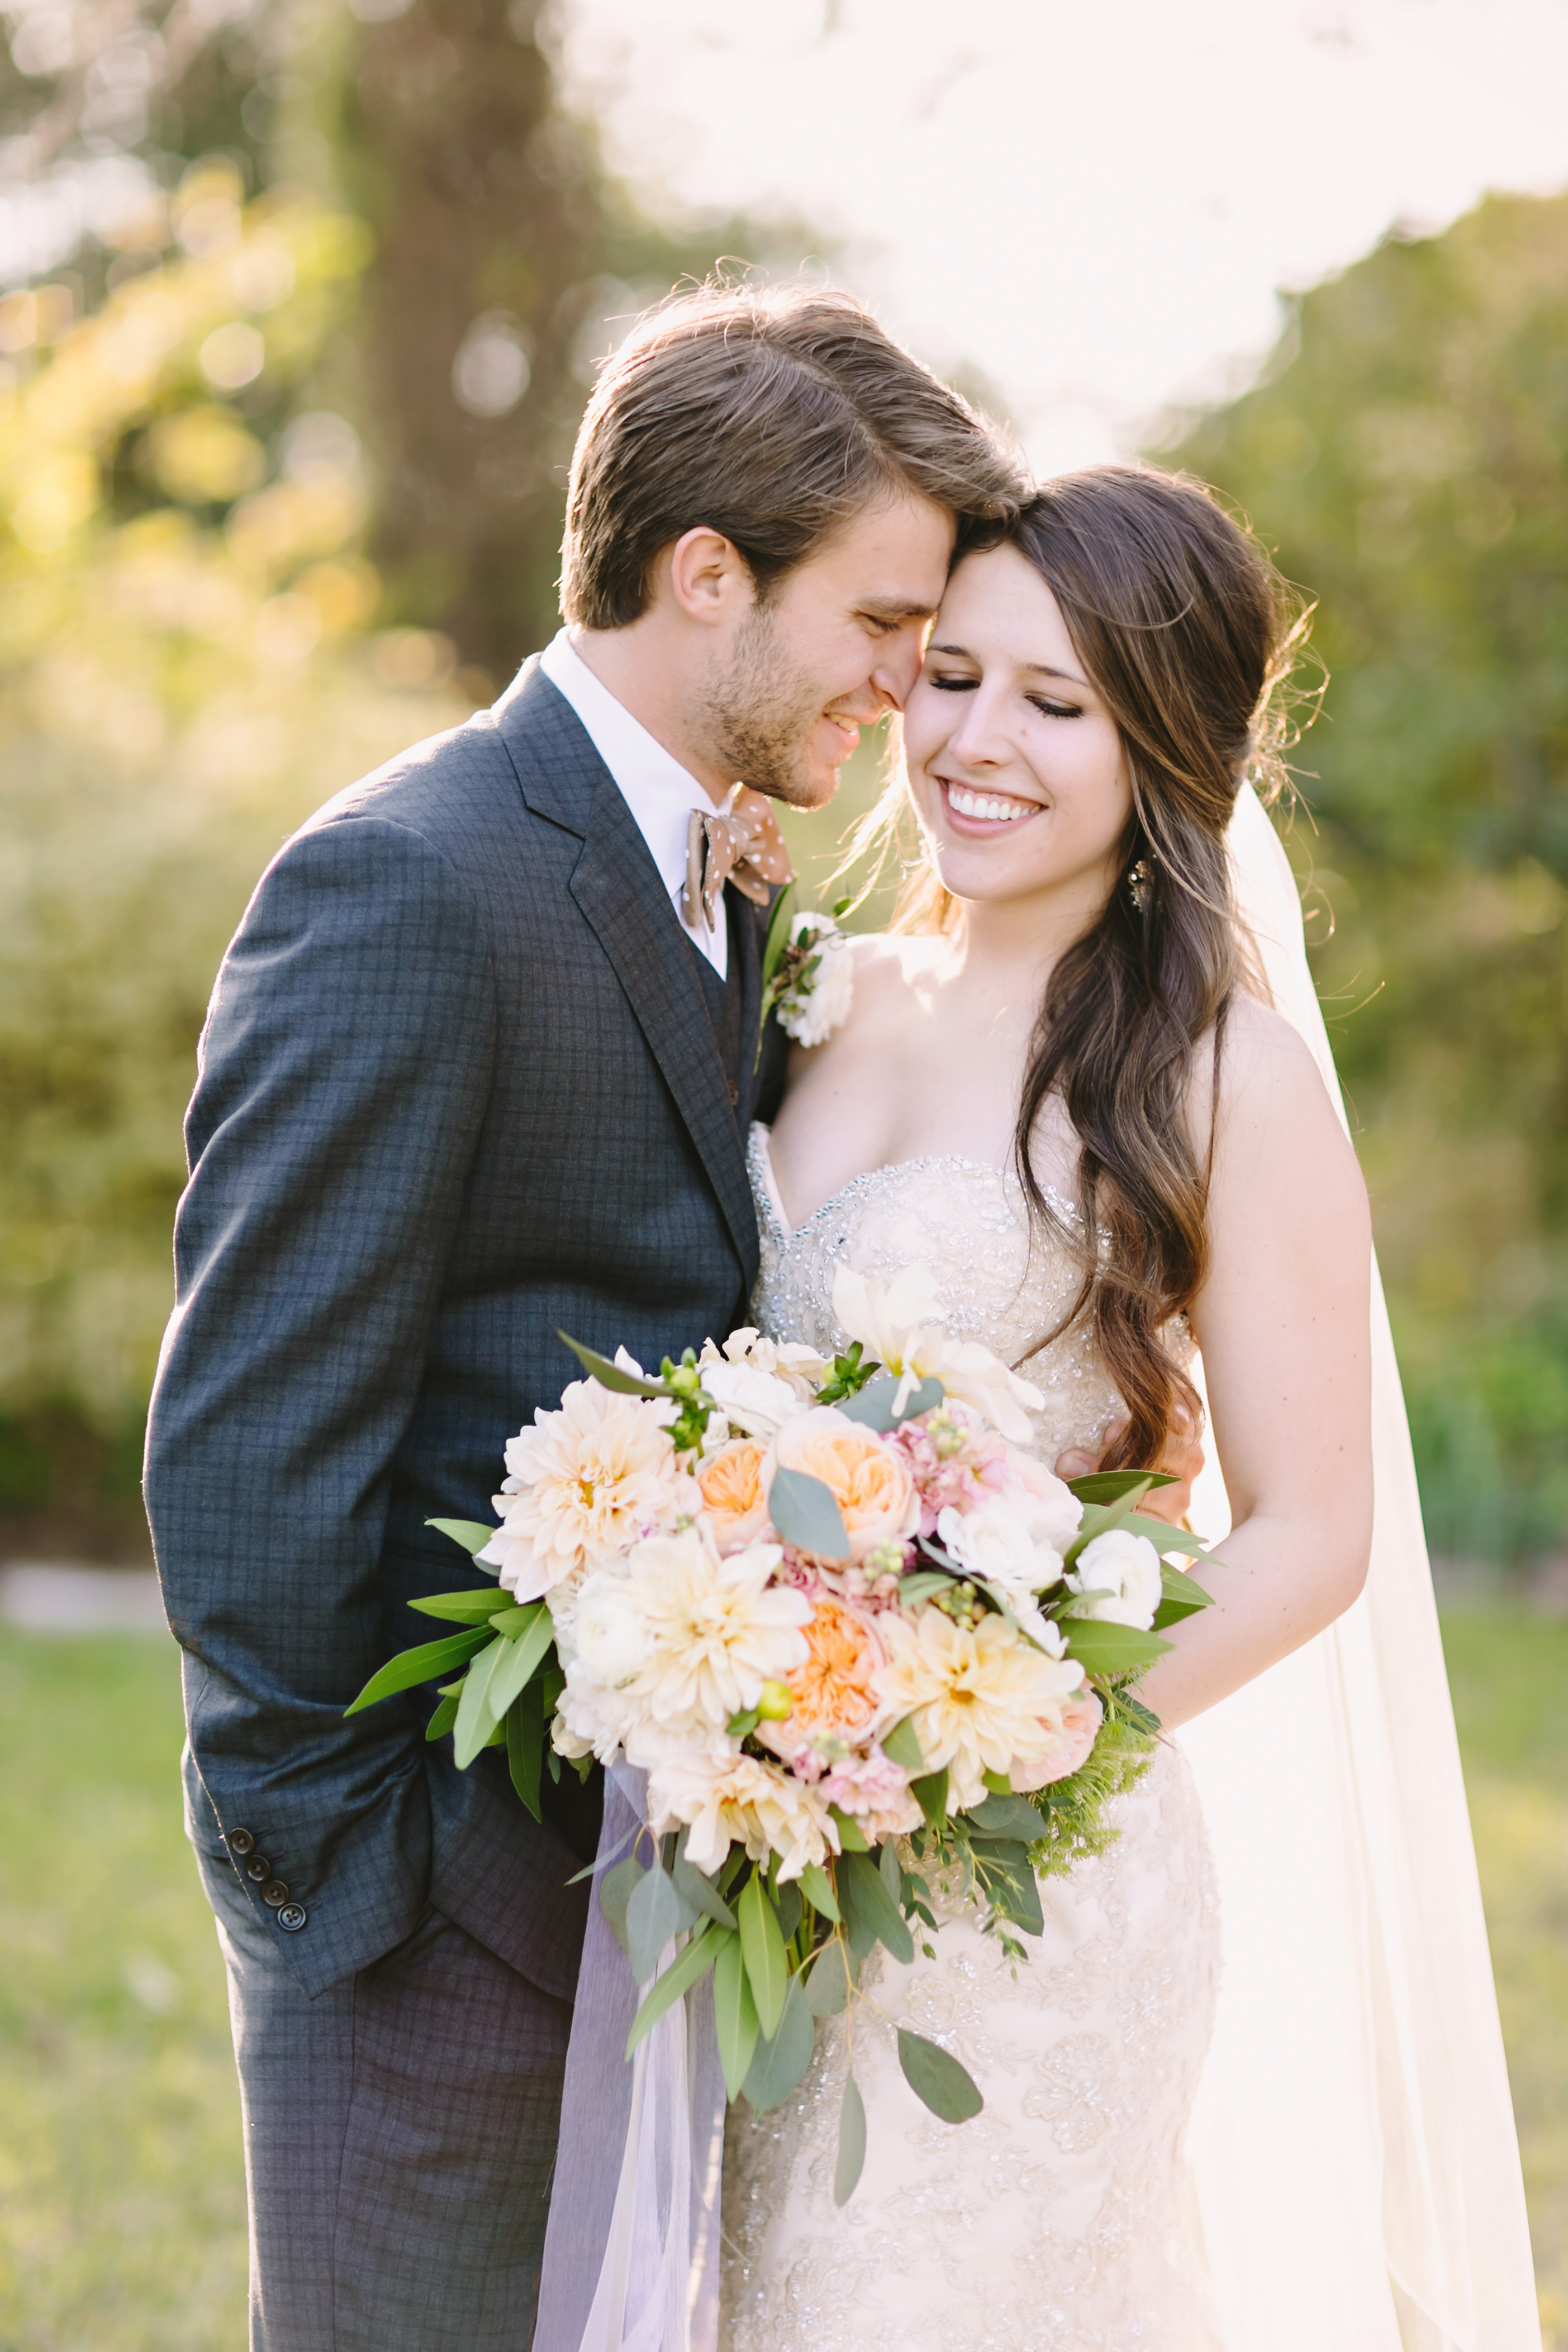 Brittany & Jeff's Wedding | Julie Wilhite Photography | Austin Barr Mansion Wedding | Winter Wedding | Flora Fetish Floral | via juliewilhite.com